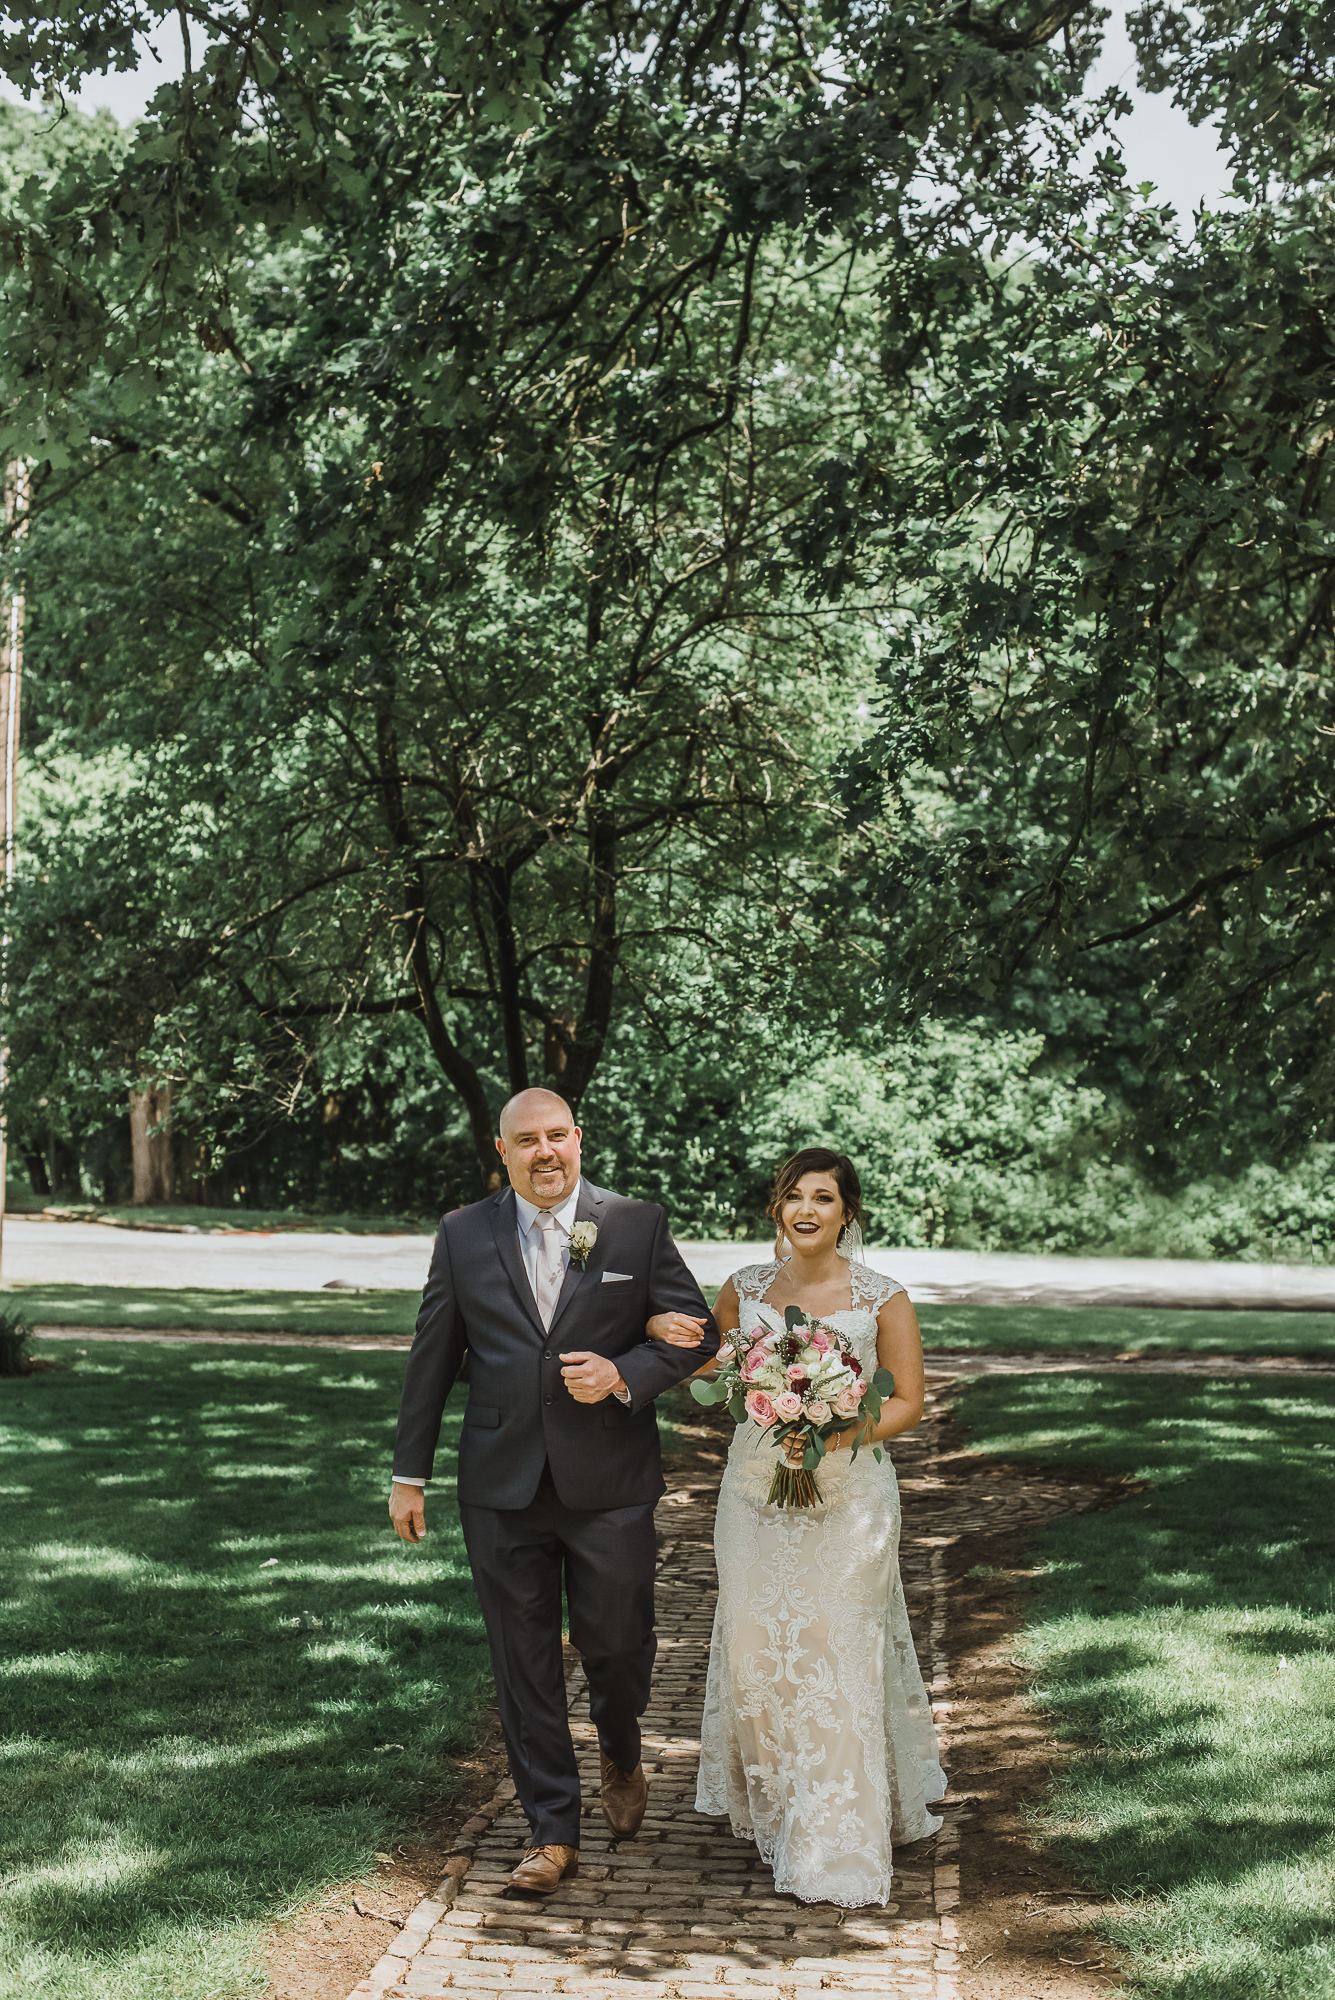 Melissa Cervantes Photography _ Kelsey + Ben Junebug Weddings Submission-47a.jpg